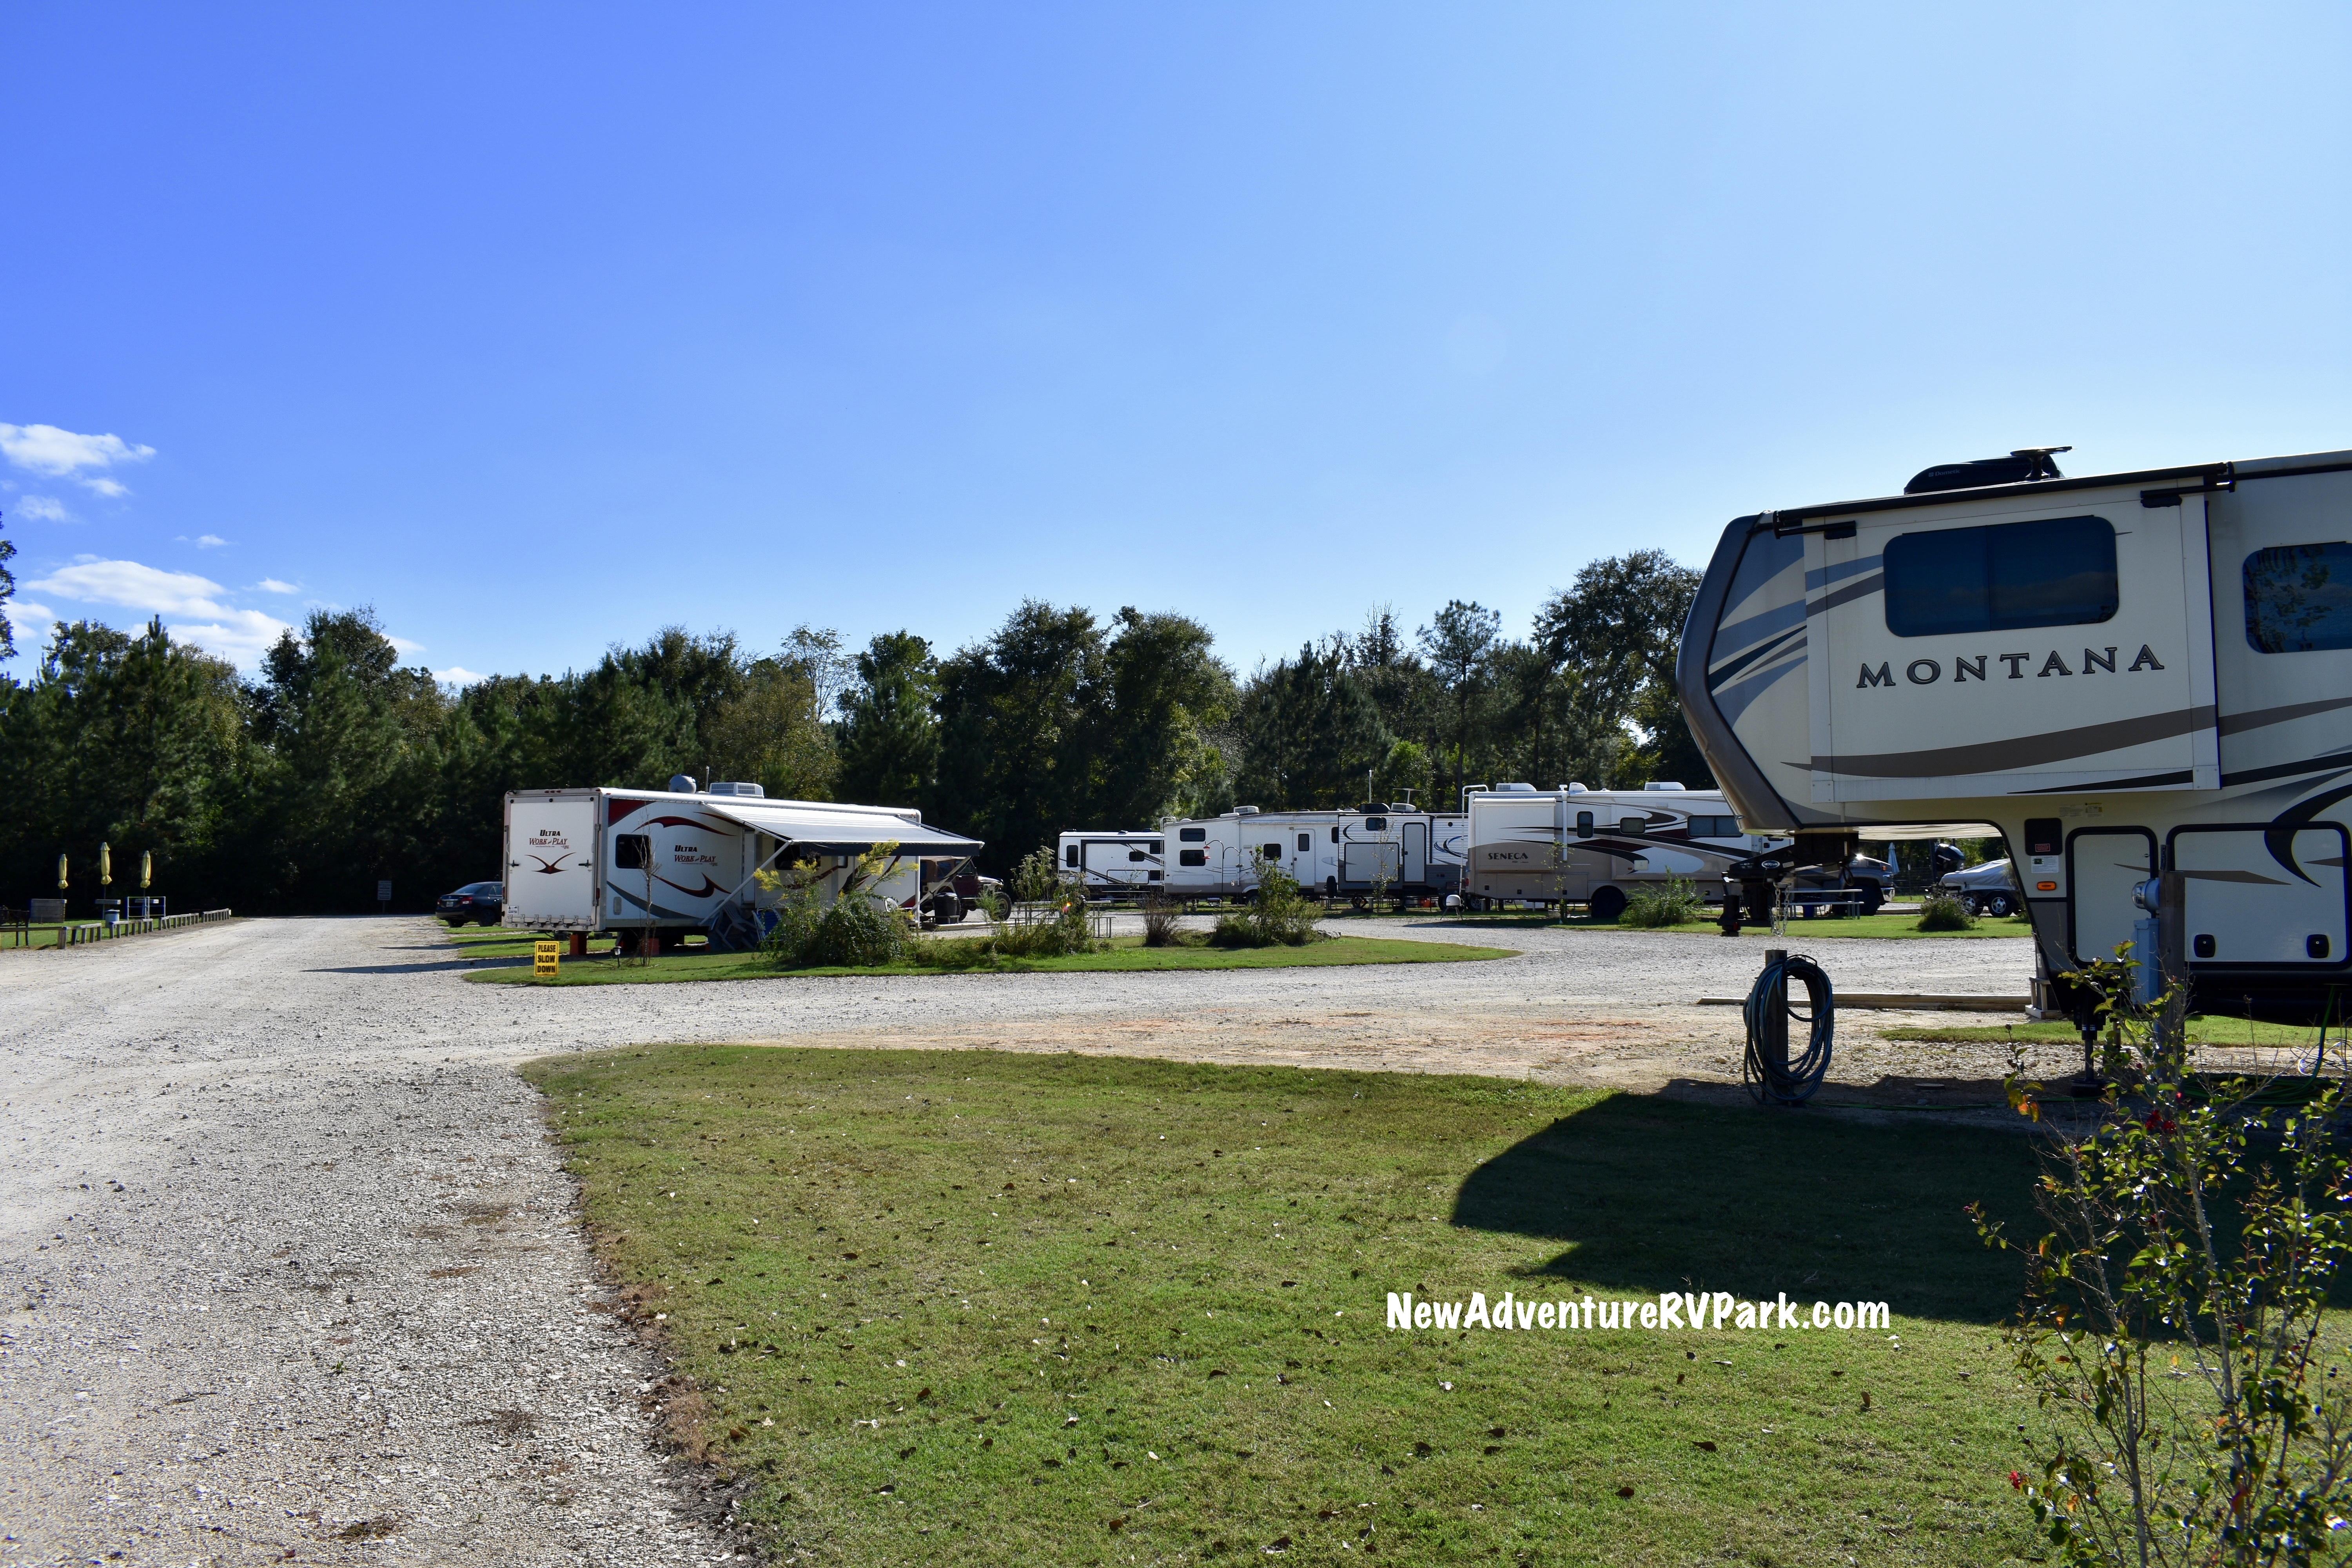 RV sites at New Adventure RV.